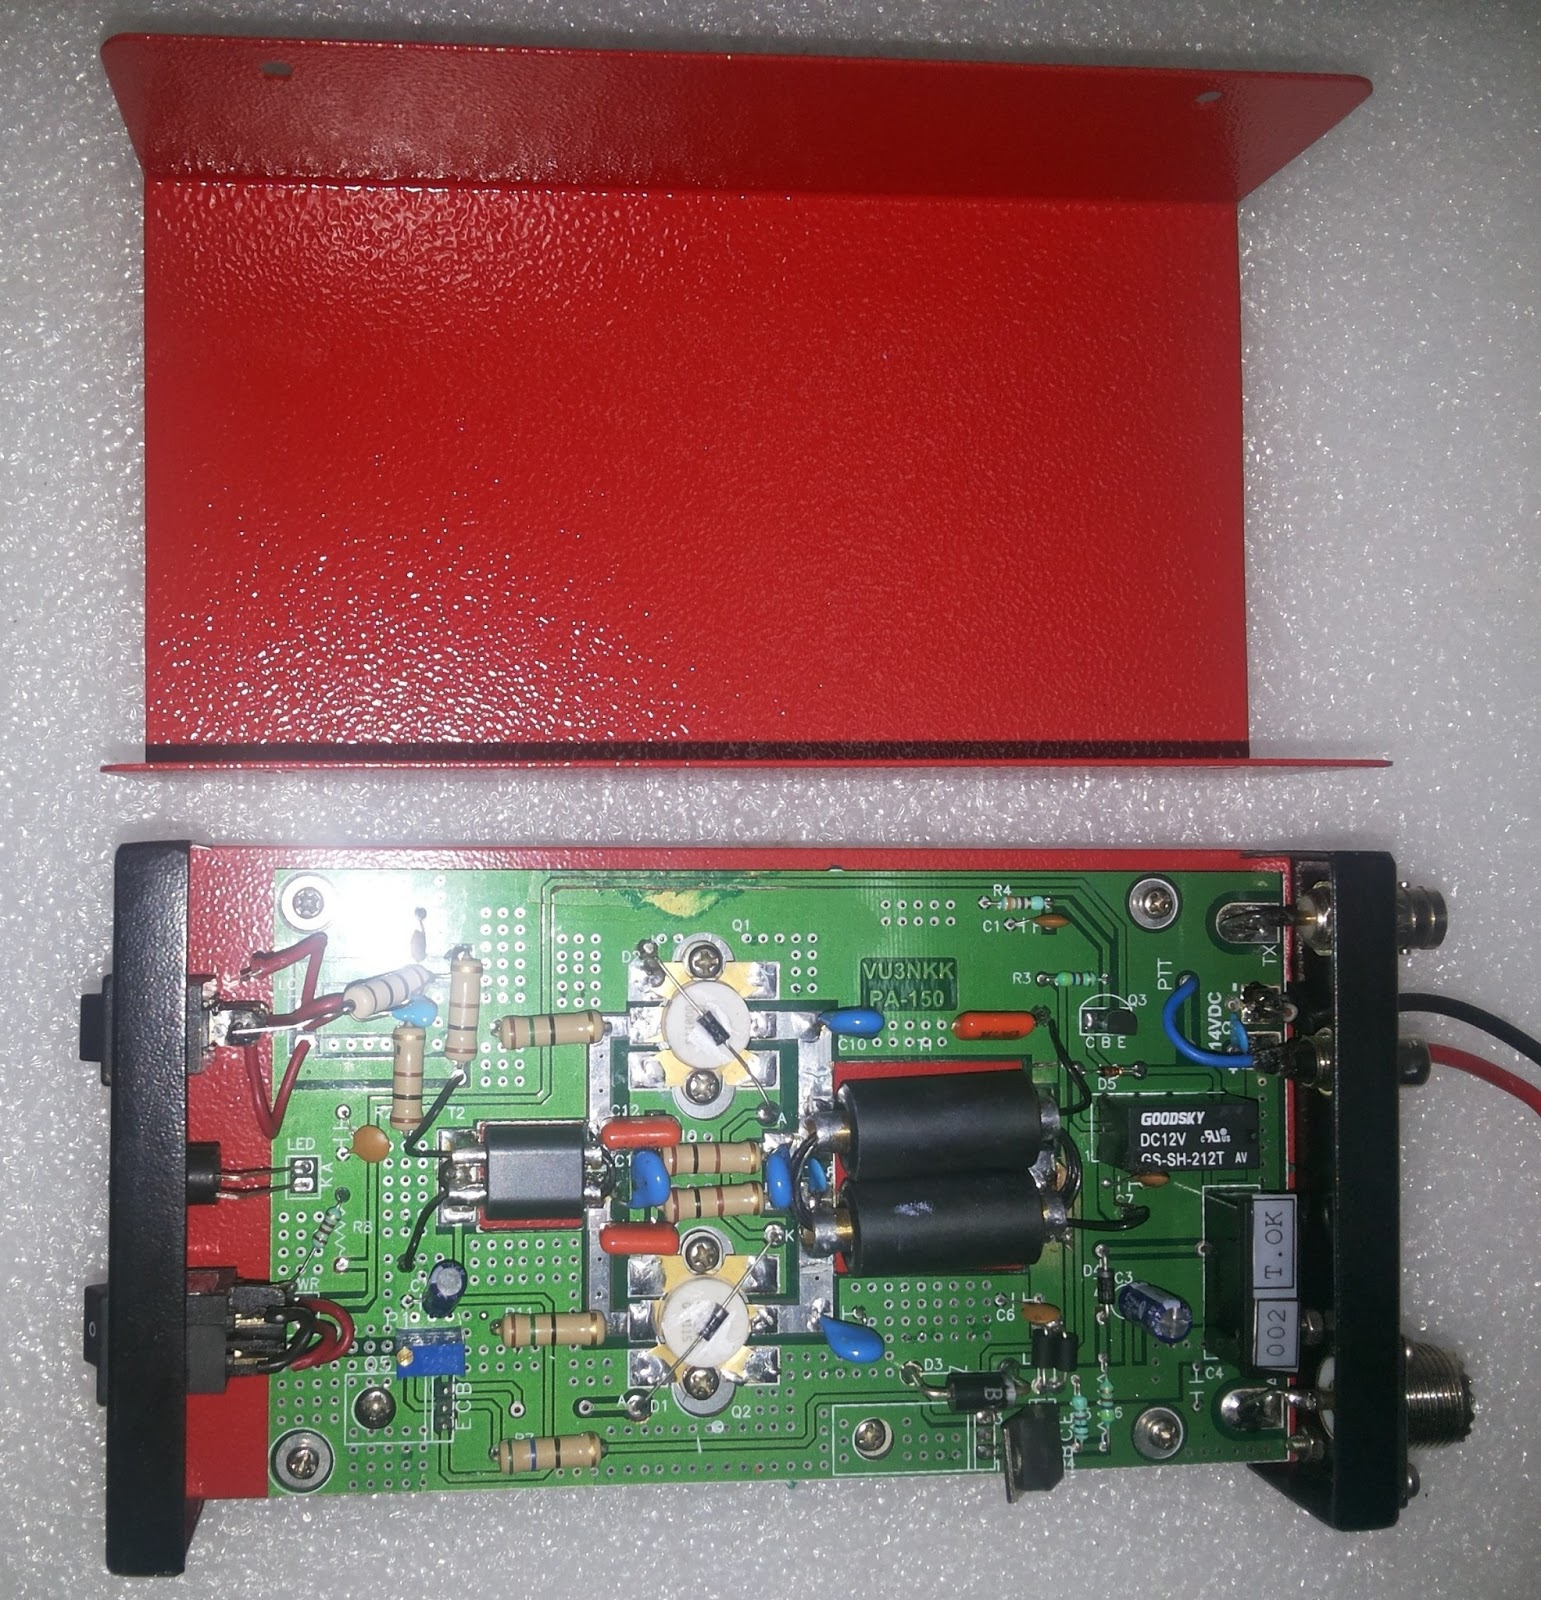 Home Brew Corner: PA150 HF LINEAR 200W Amplifier